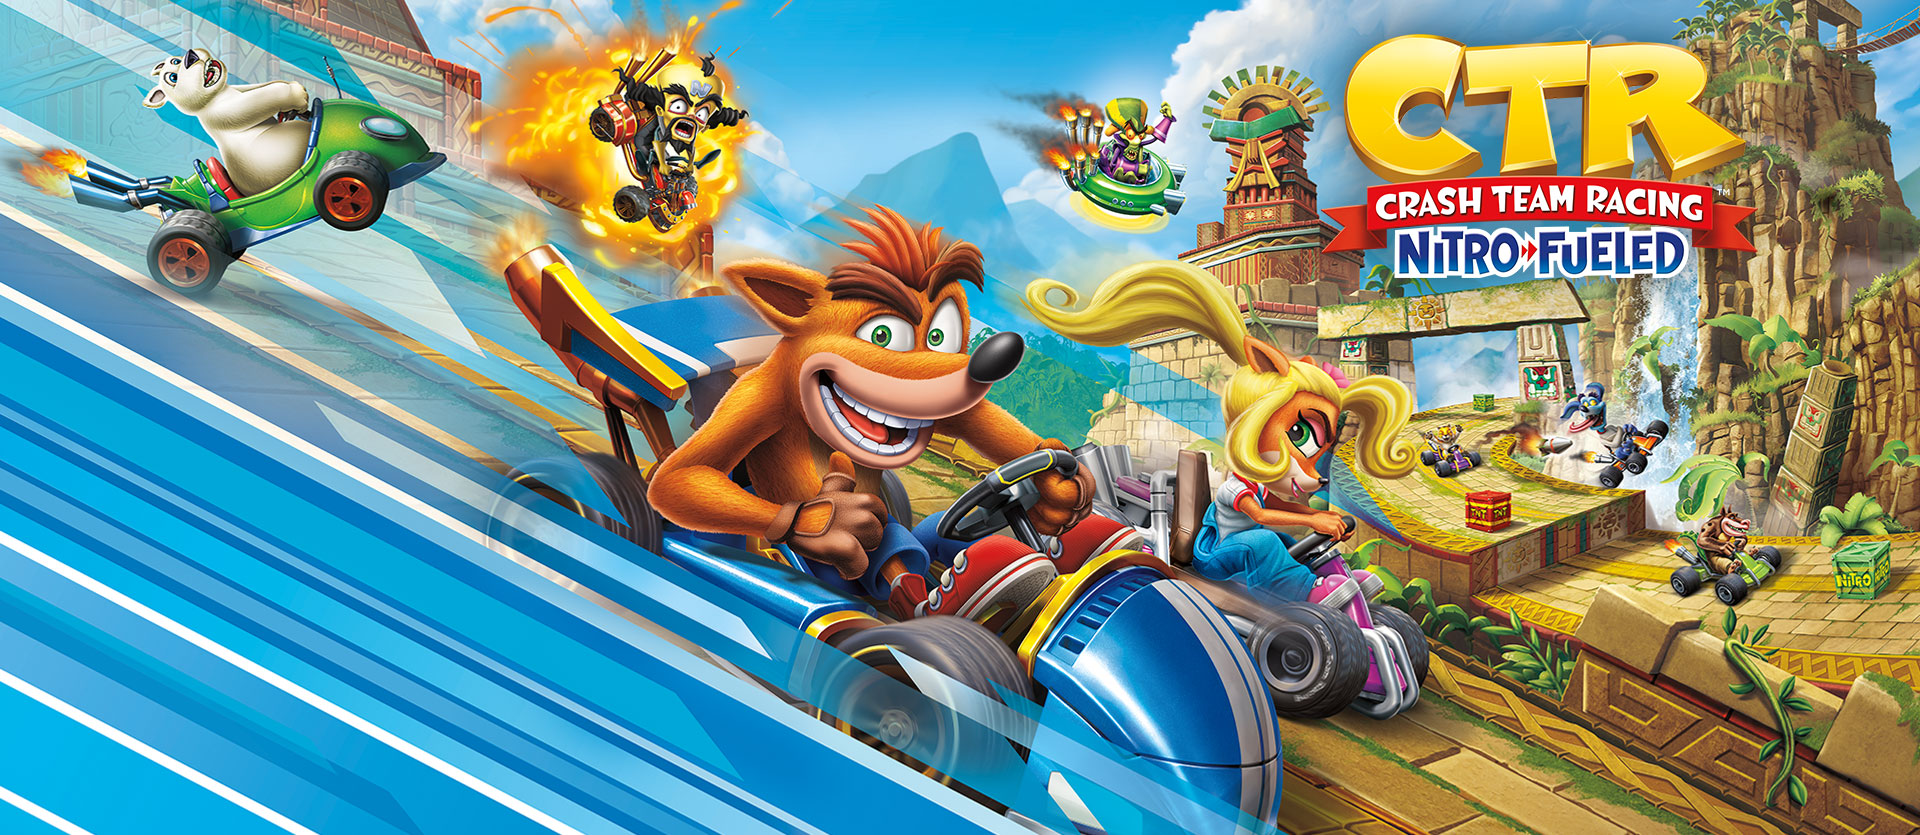 crashteamracing